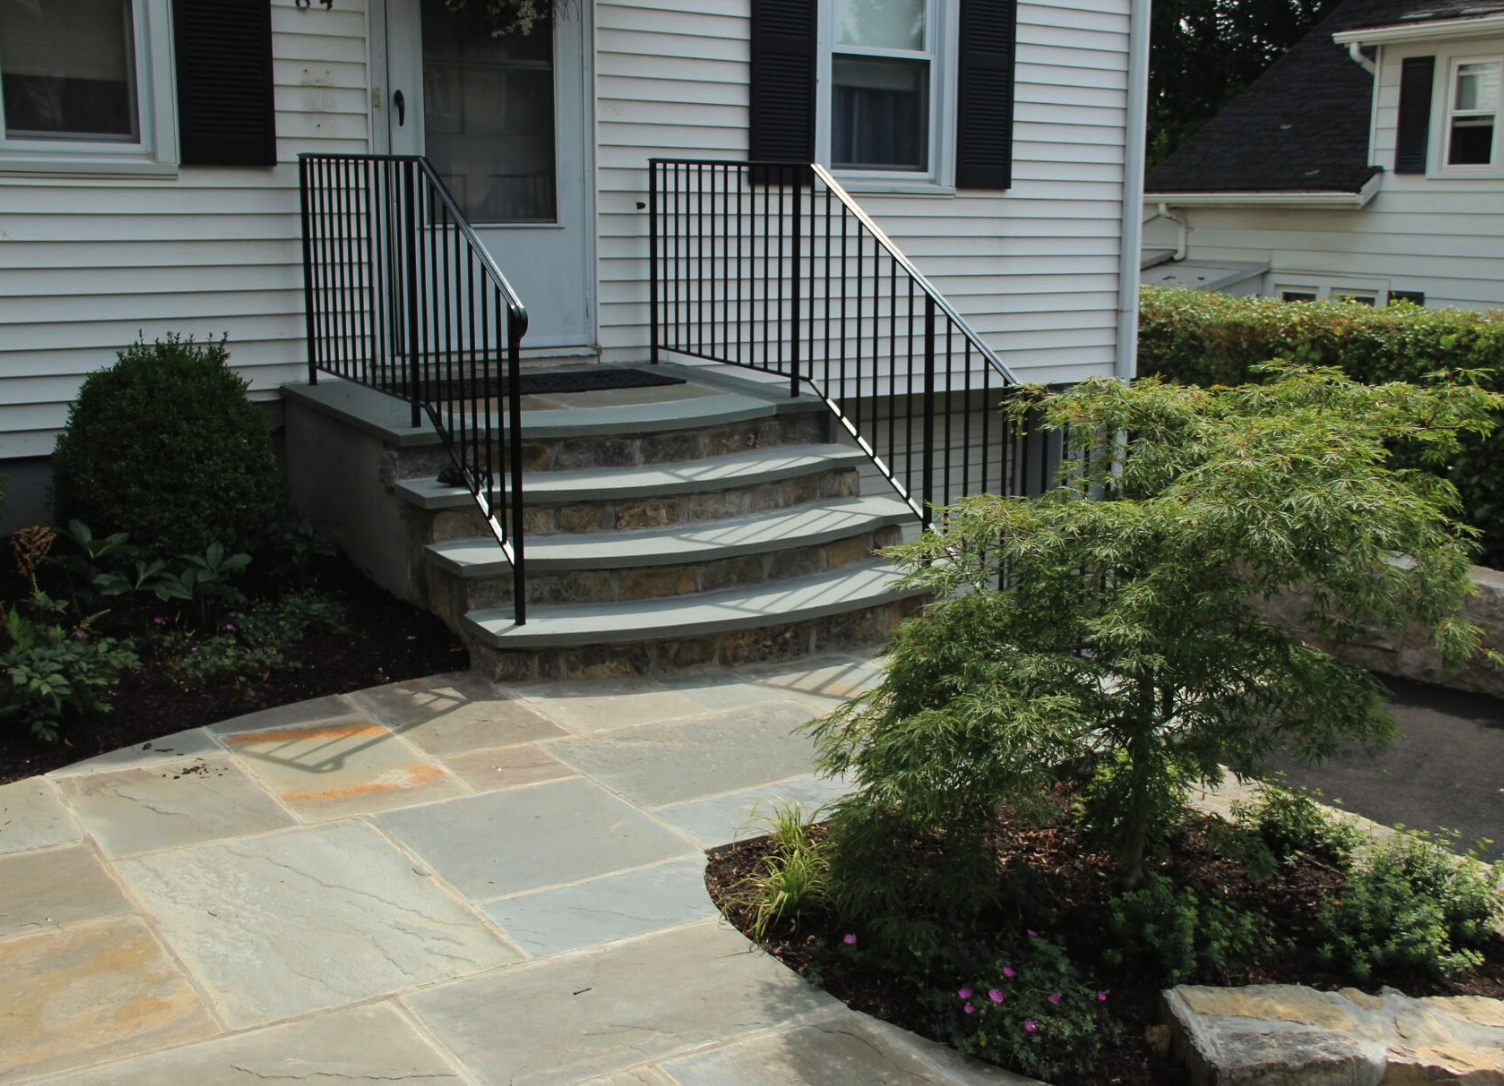 Copy of landscape design natural stone and steps Westchester County, NY